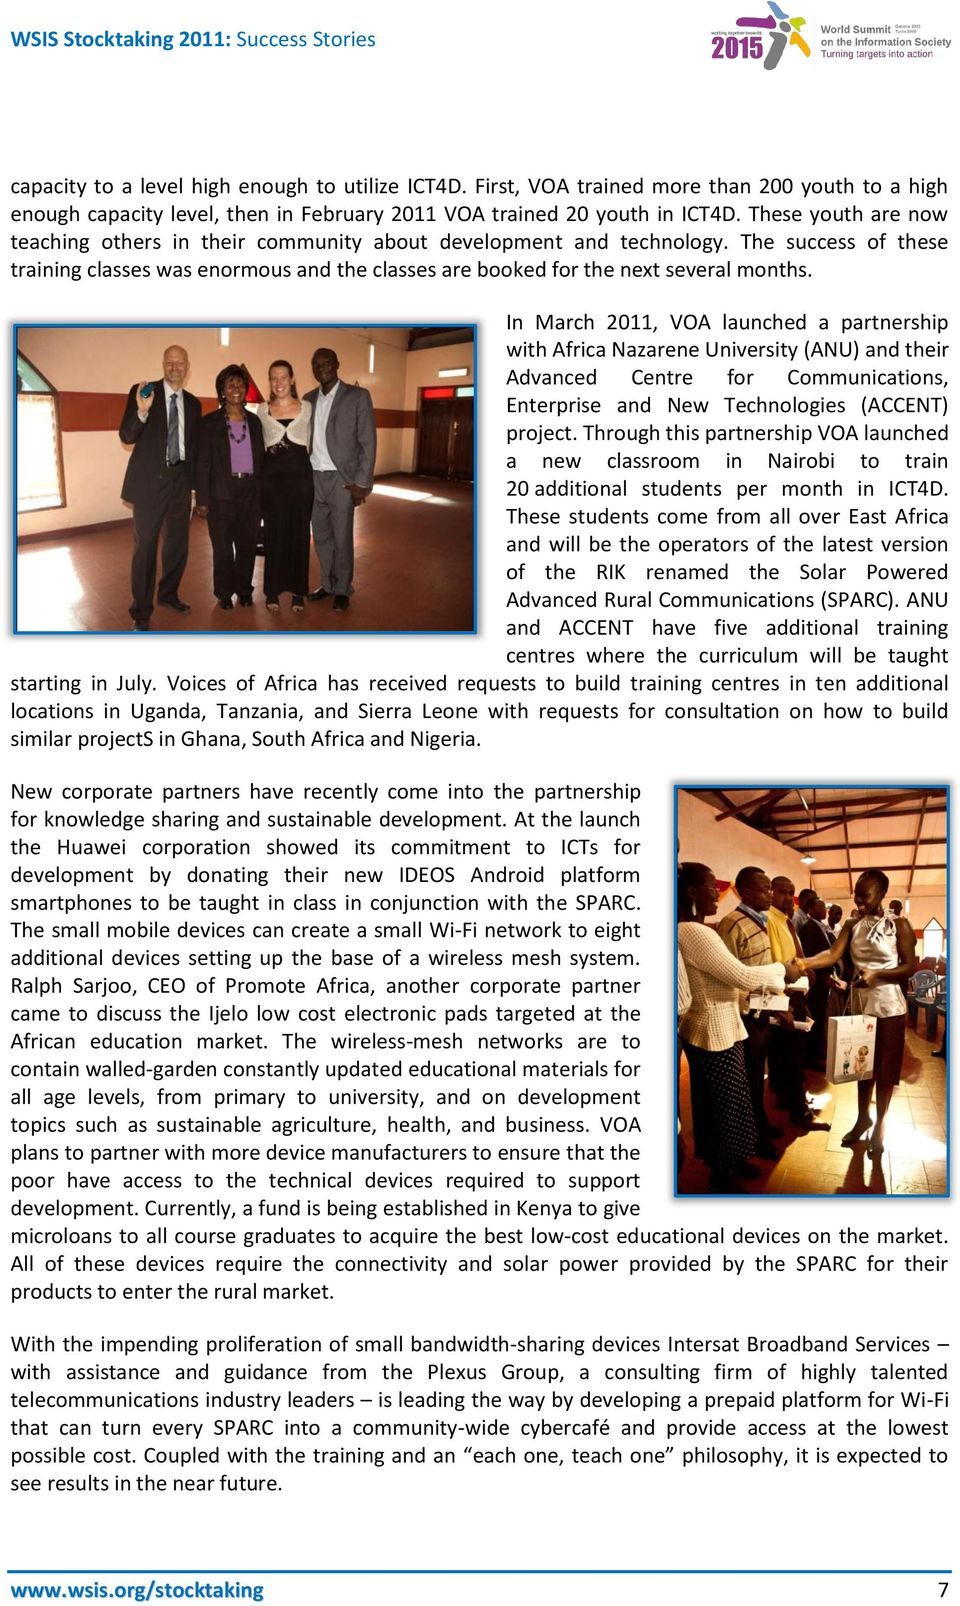 In March 2011, VOA launched a partnership with Africa Nazarene University (ANU) and their Advanced Centre for Communications, Enterprise and New Technologies (ACCENT) project.